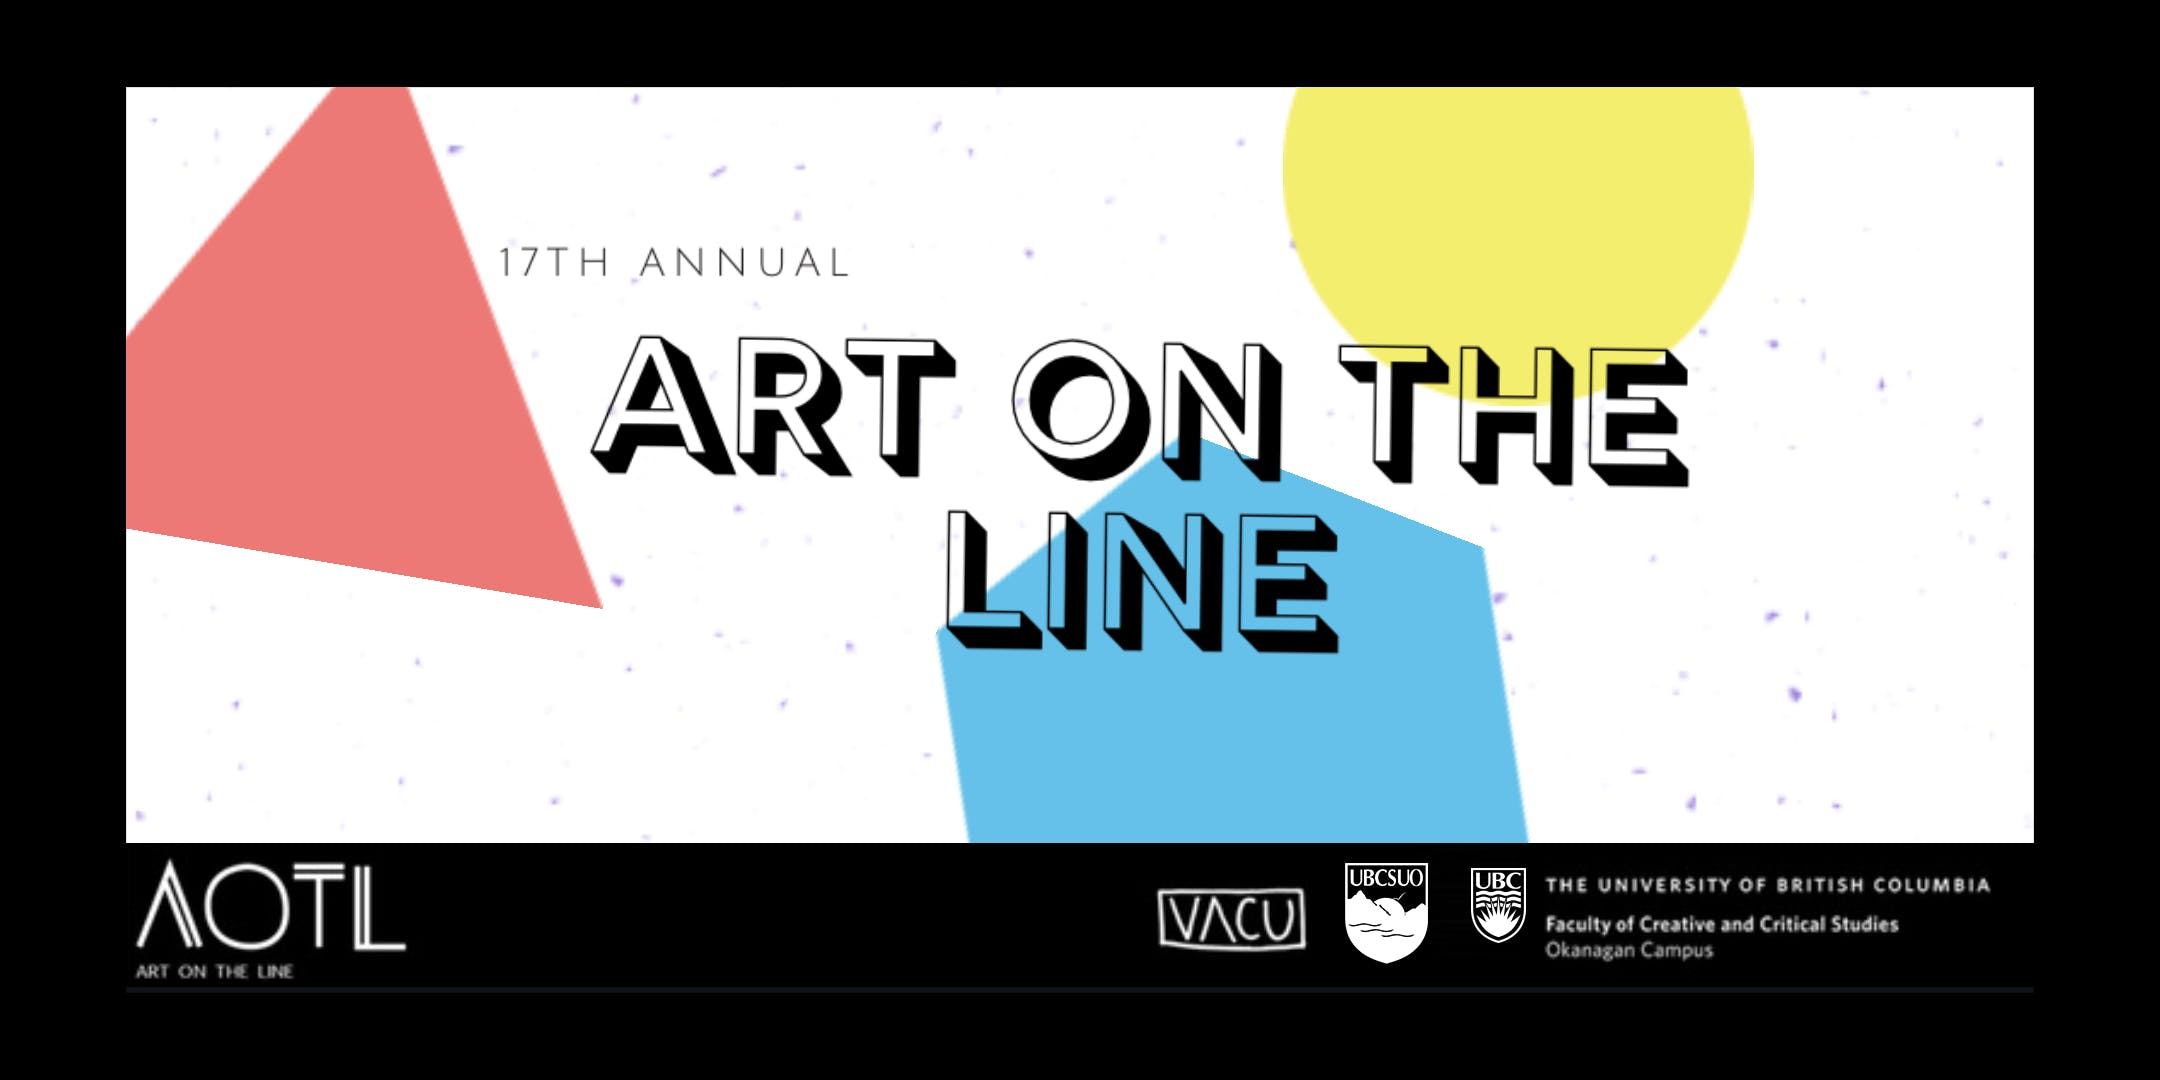 UBCSUO Visual Arts Course Union presents Art on the Line